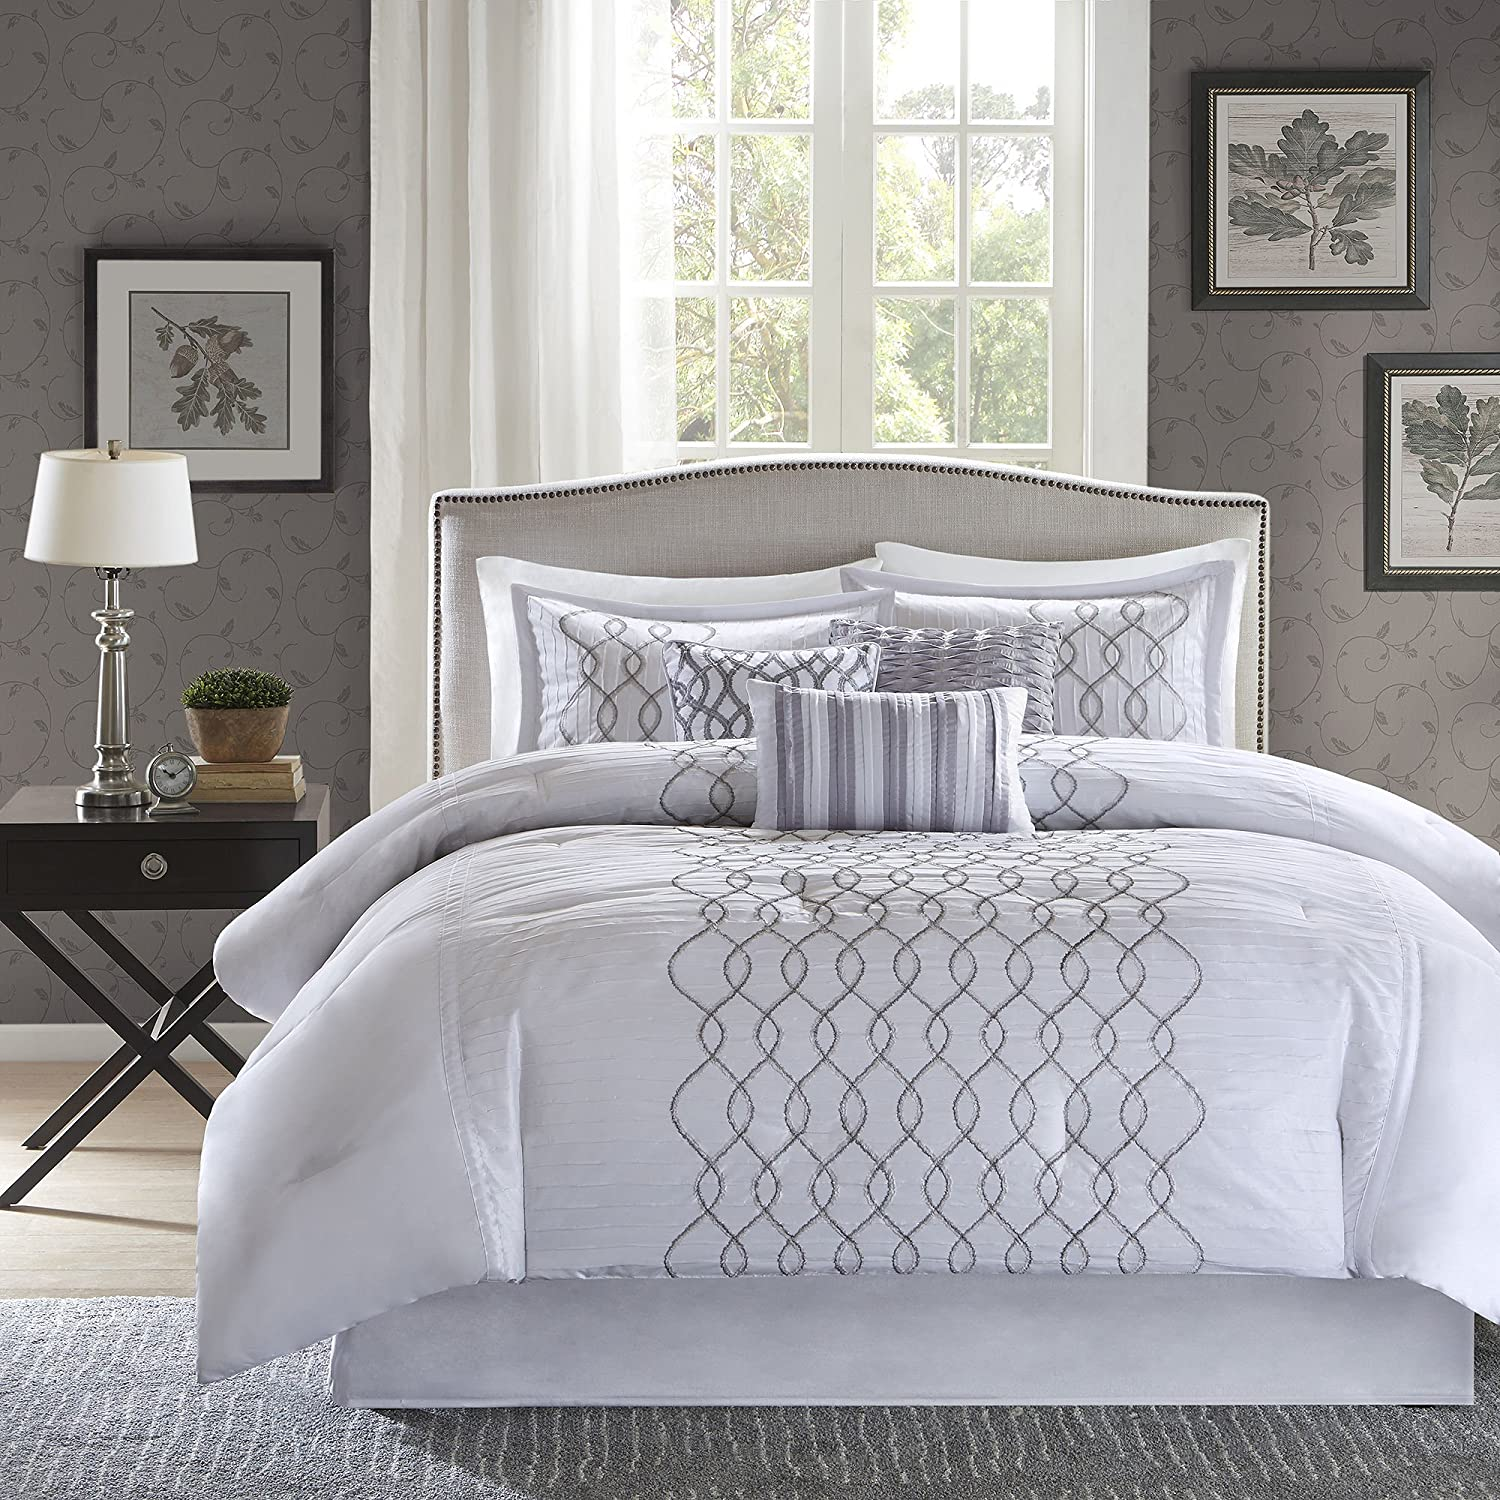 Madison Park Iris 7 Piece Comforter Set, King, Silver